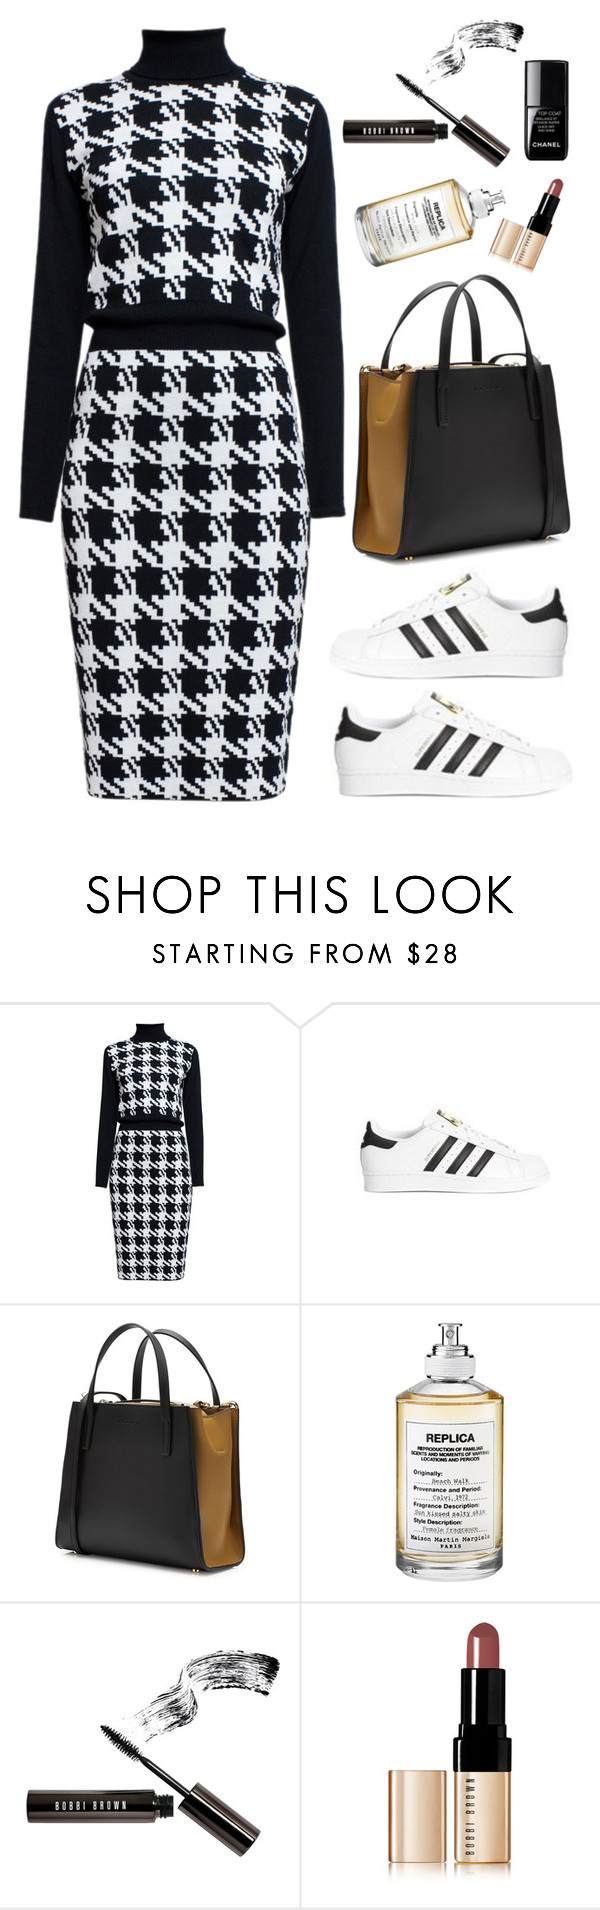 """Rumour London - LINA Houndstooth Merino Wool Dress"" by thestyleartisan ❤ liked on Polyvore featuring Rumour London, Marni, Maison Margiela, Bobbi Brown Cosmetics, Chanel, women's clothing, women, female, woman and misses"